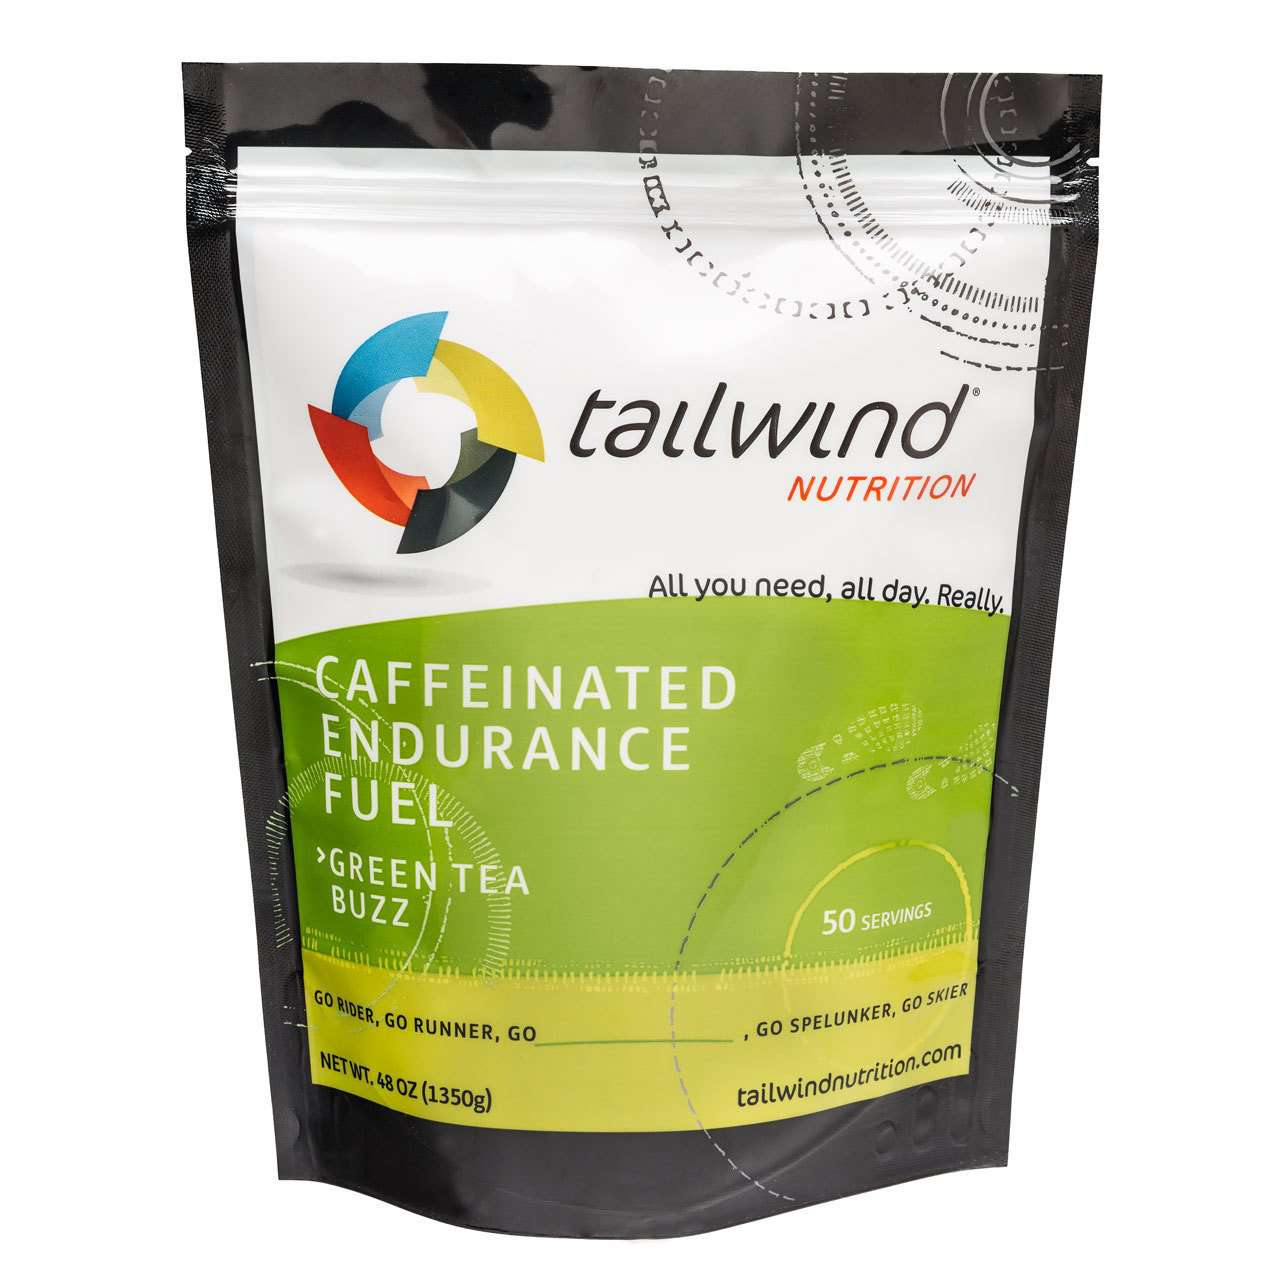 Tailwind Nutrition - 50 Serving Bag Caffeinated - BlackToe Running Inc. - Toronto Running Specialty Store